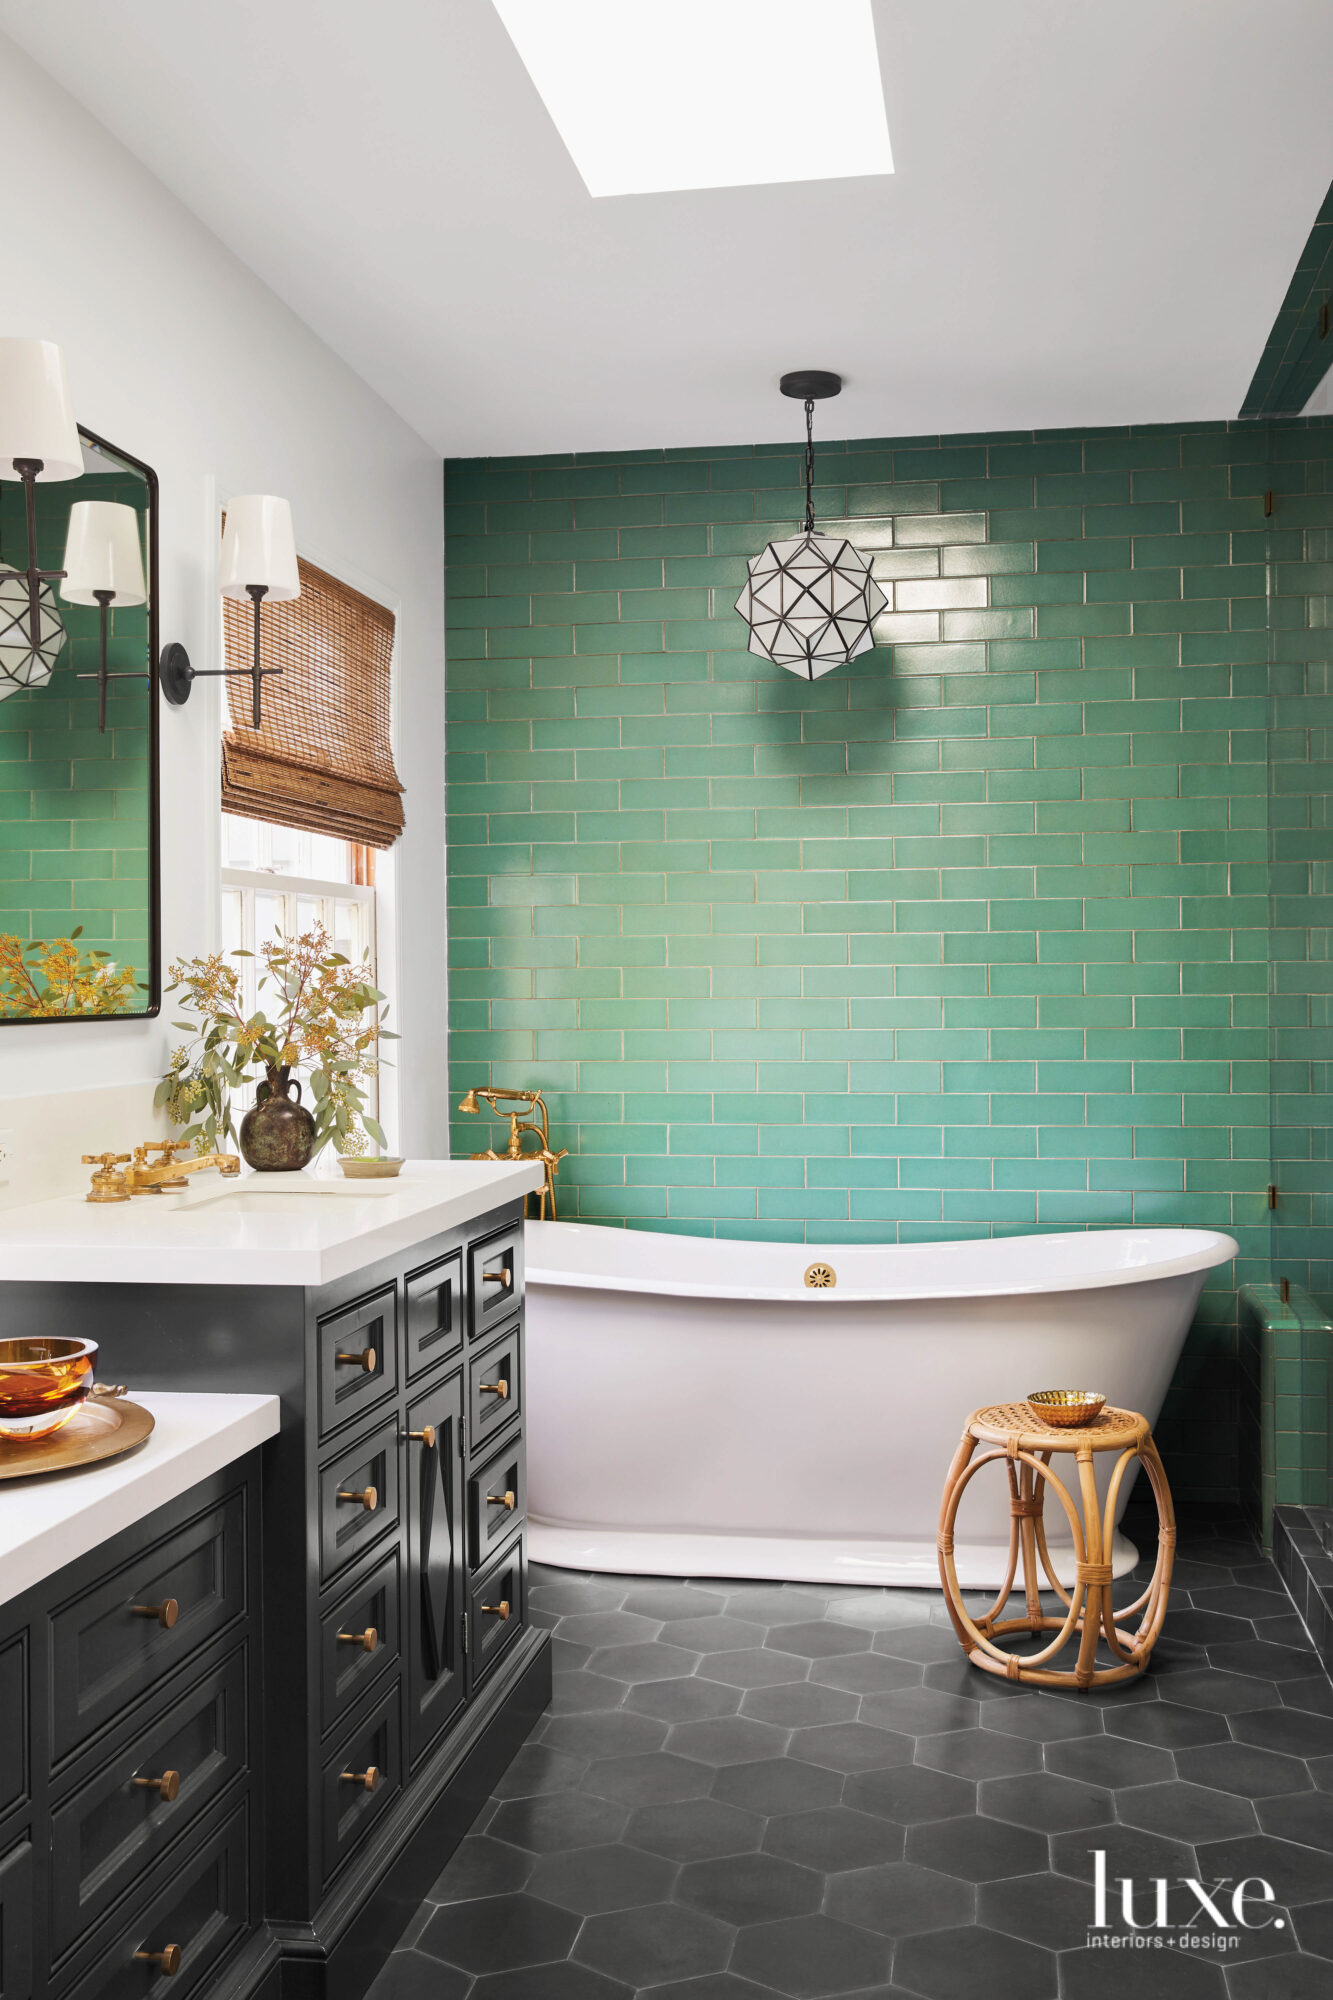 Bathroom with green, brick-shaped tile...